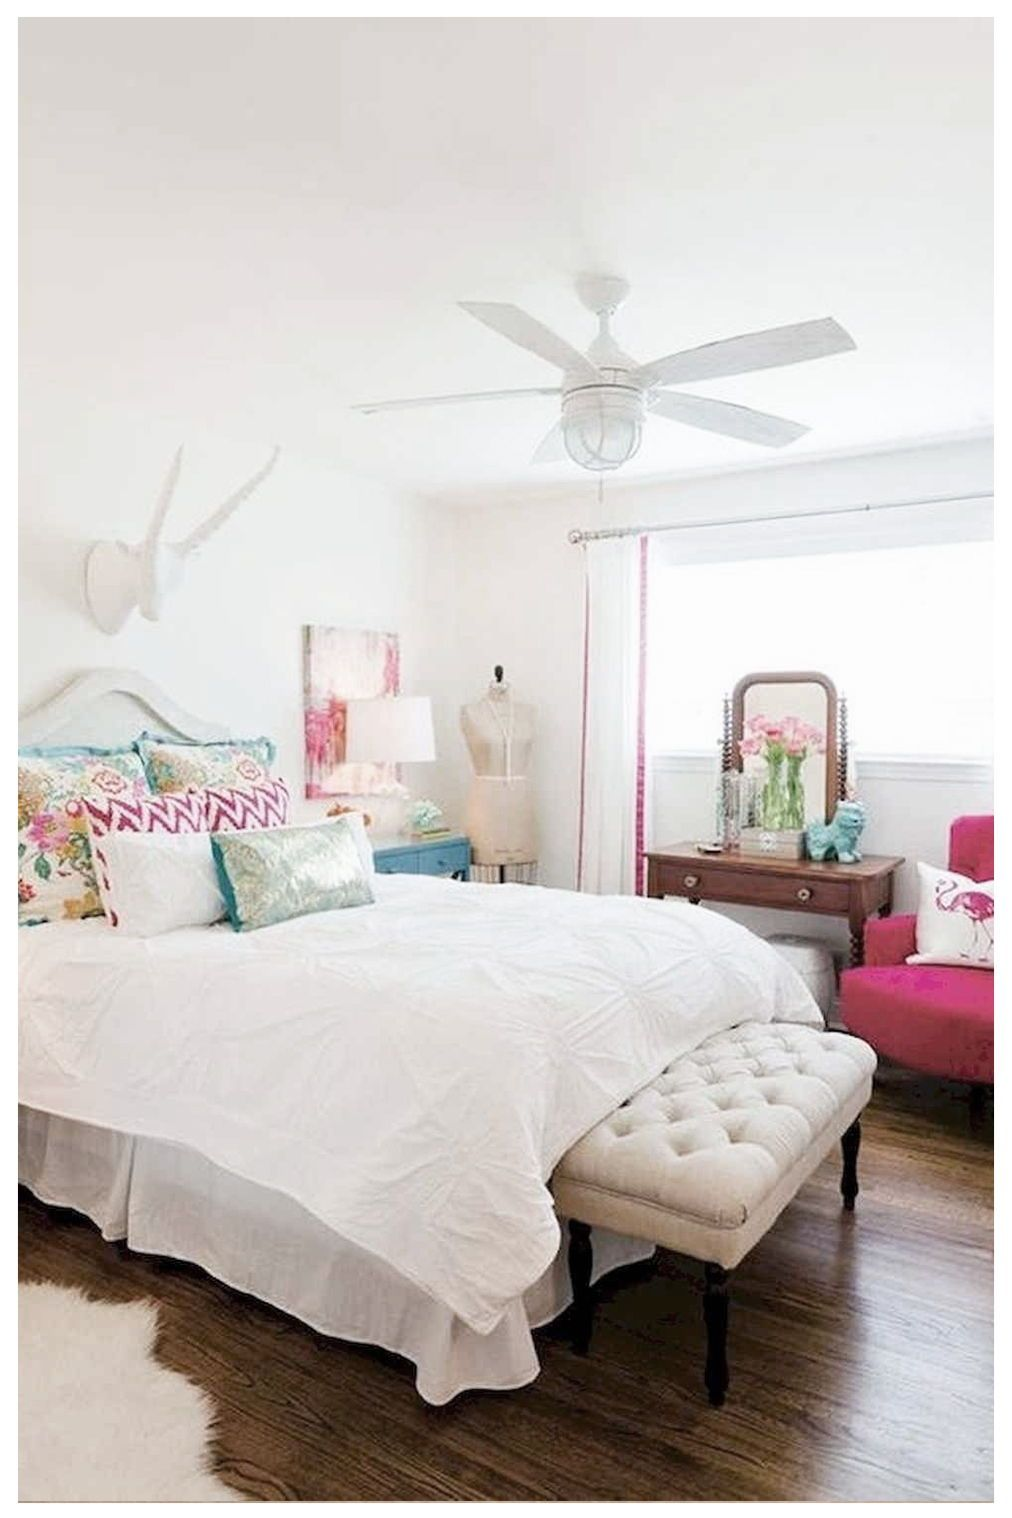 Above Bed Decor 20 Cool Photos Ideas In 2020 In 2020 Relaxing Bedroom Colors Girl Bedroom Decor Fresh Bedroom Colors